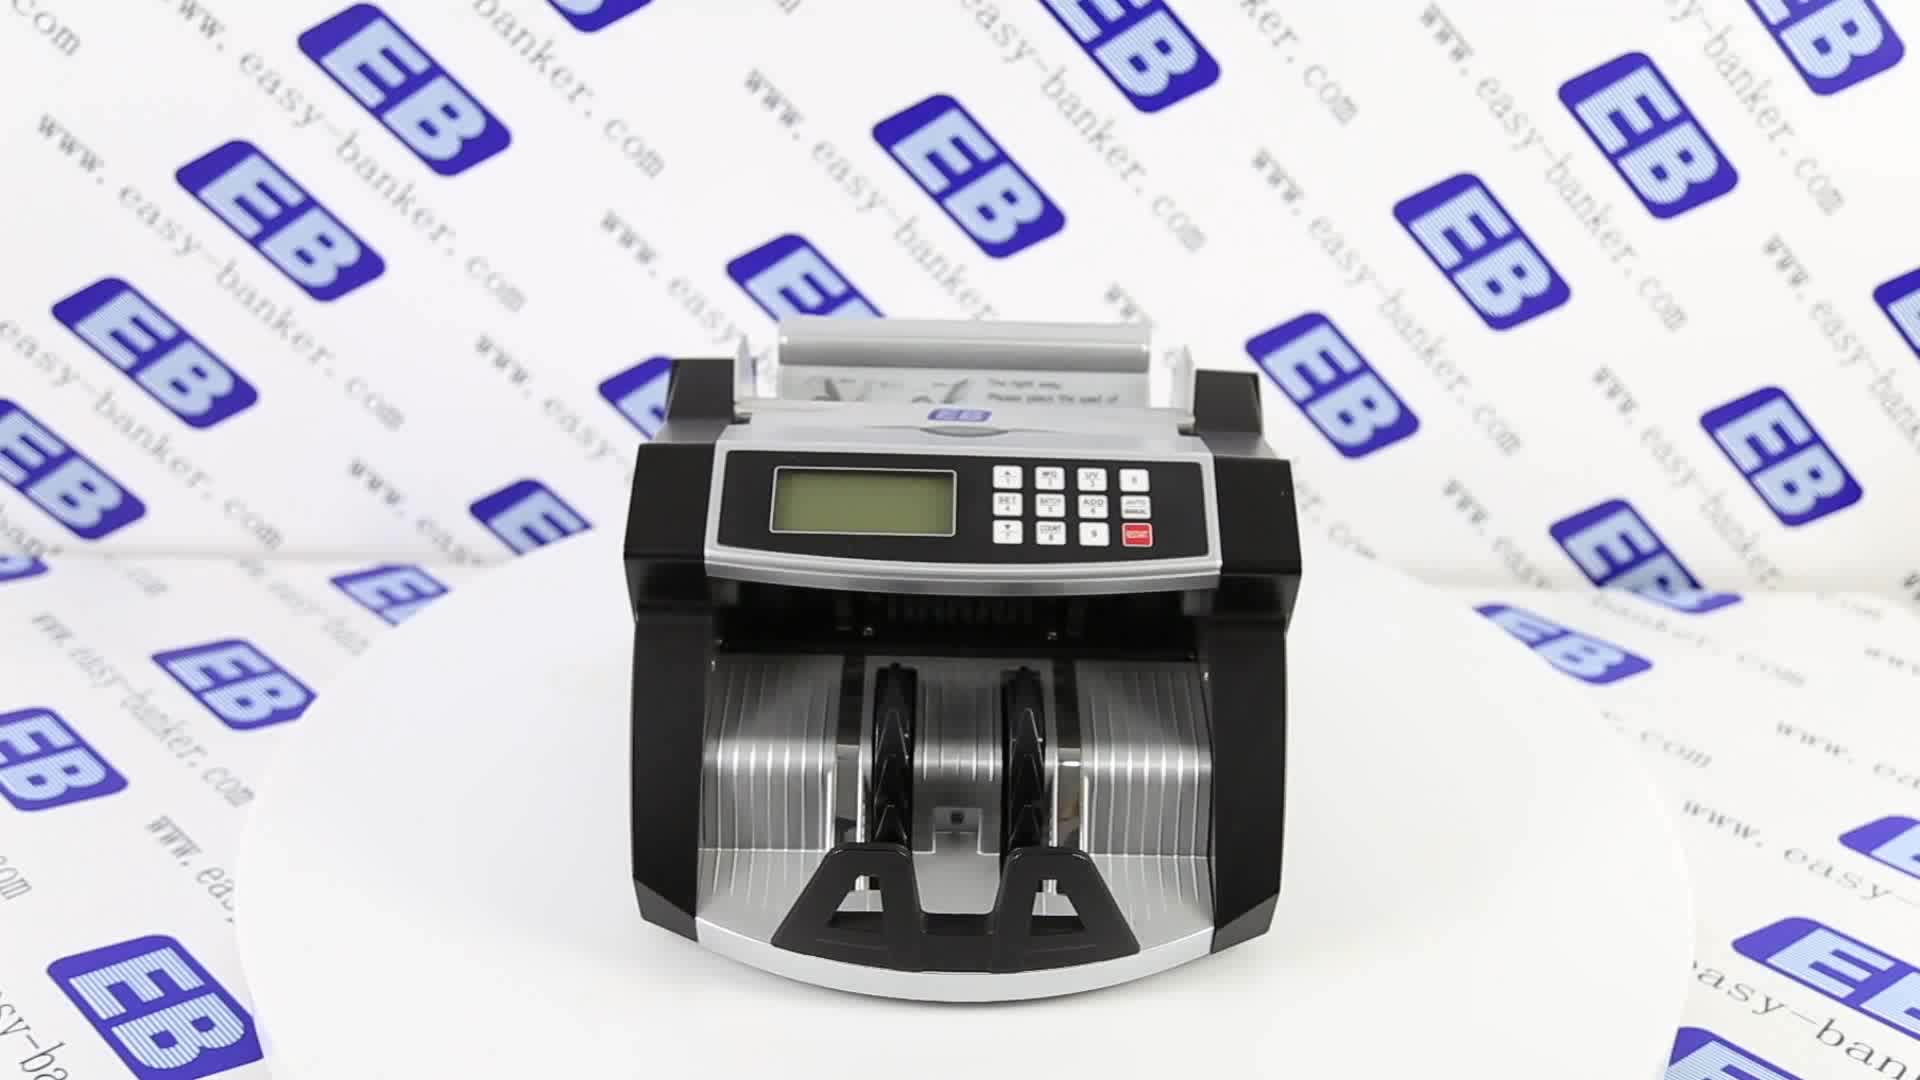 Banknote Counting Machine Detector Money Counter Uv Mg Bill Counter LD-2041